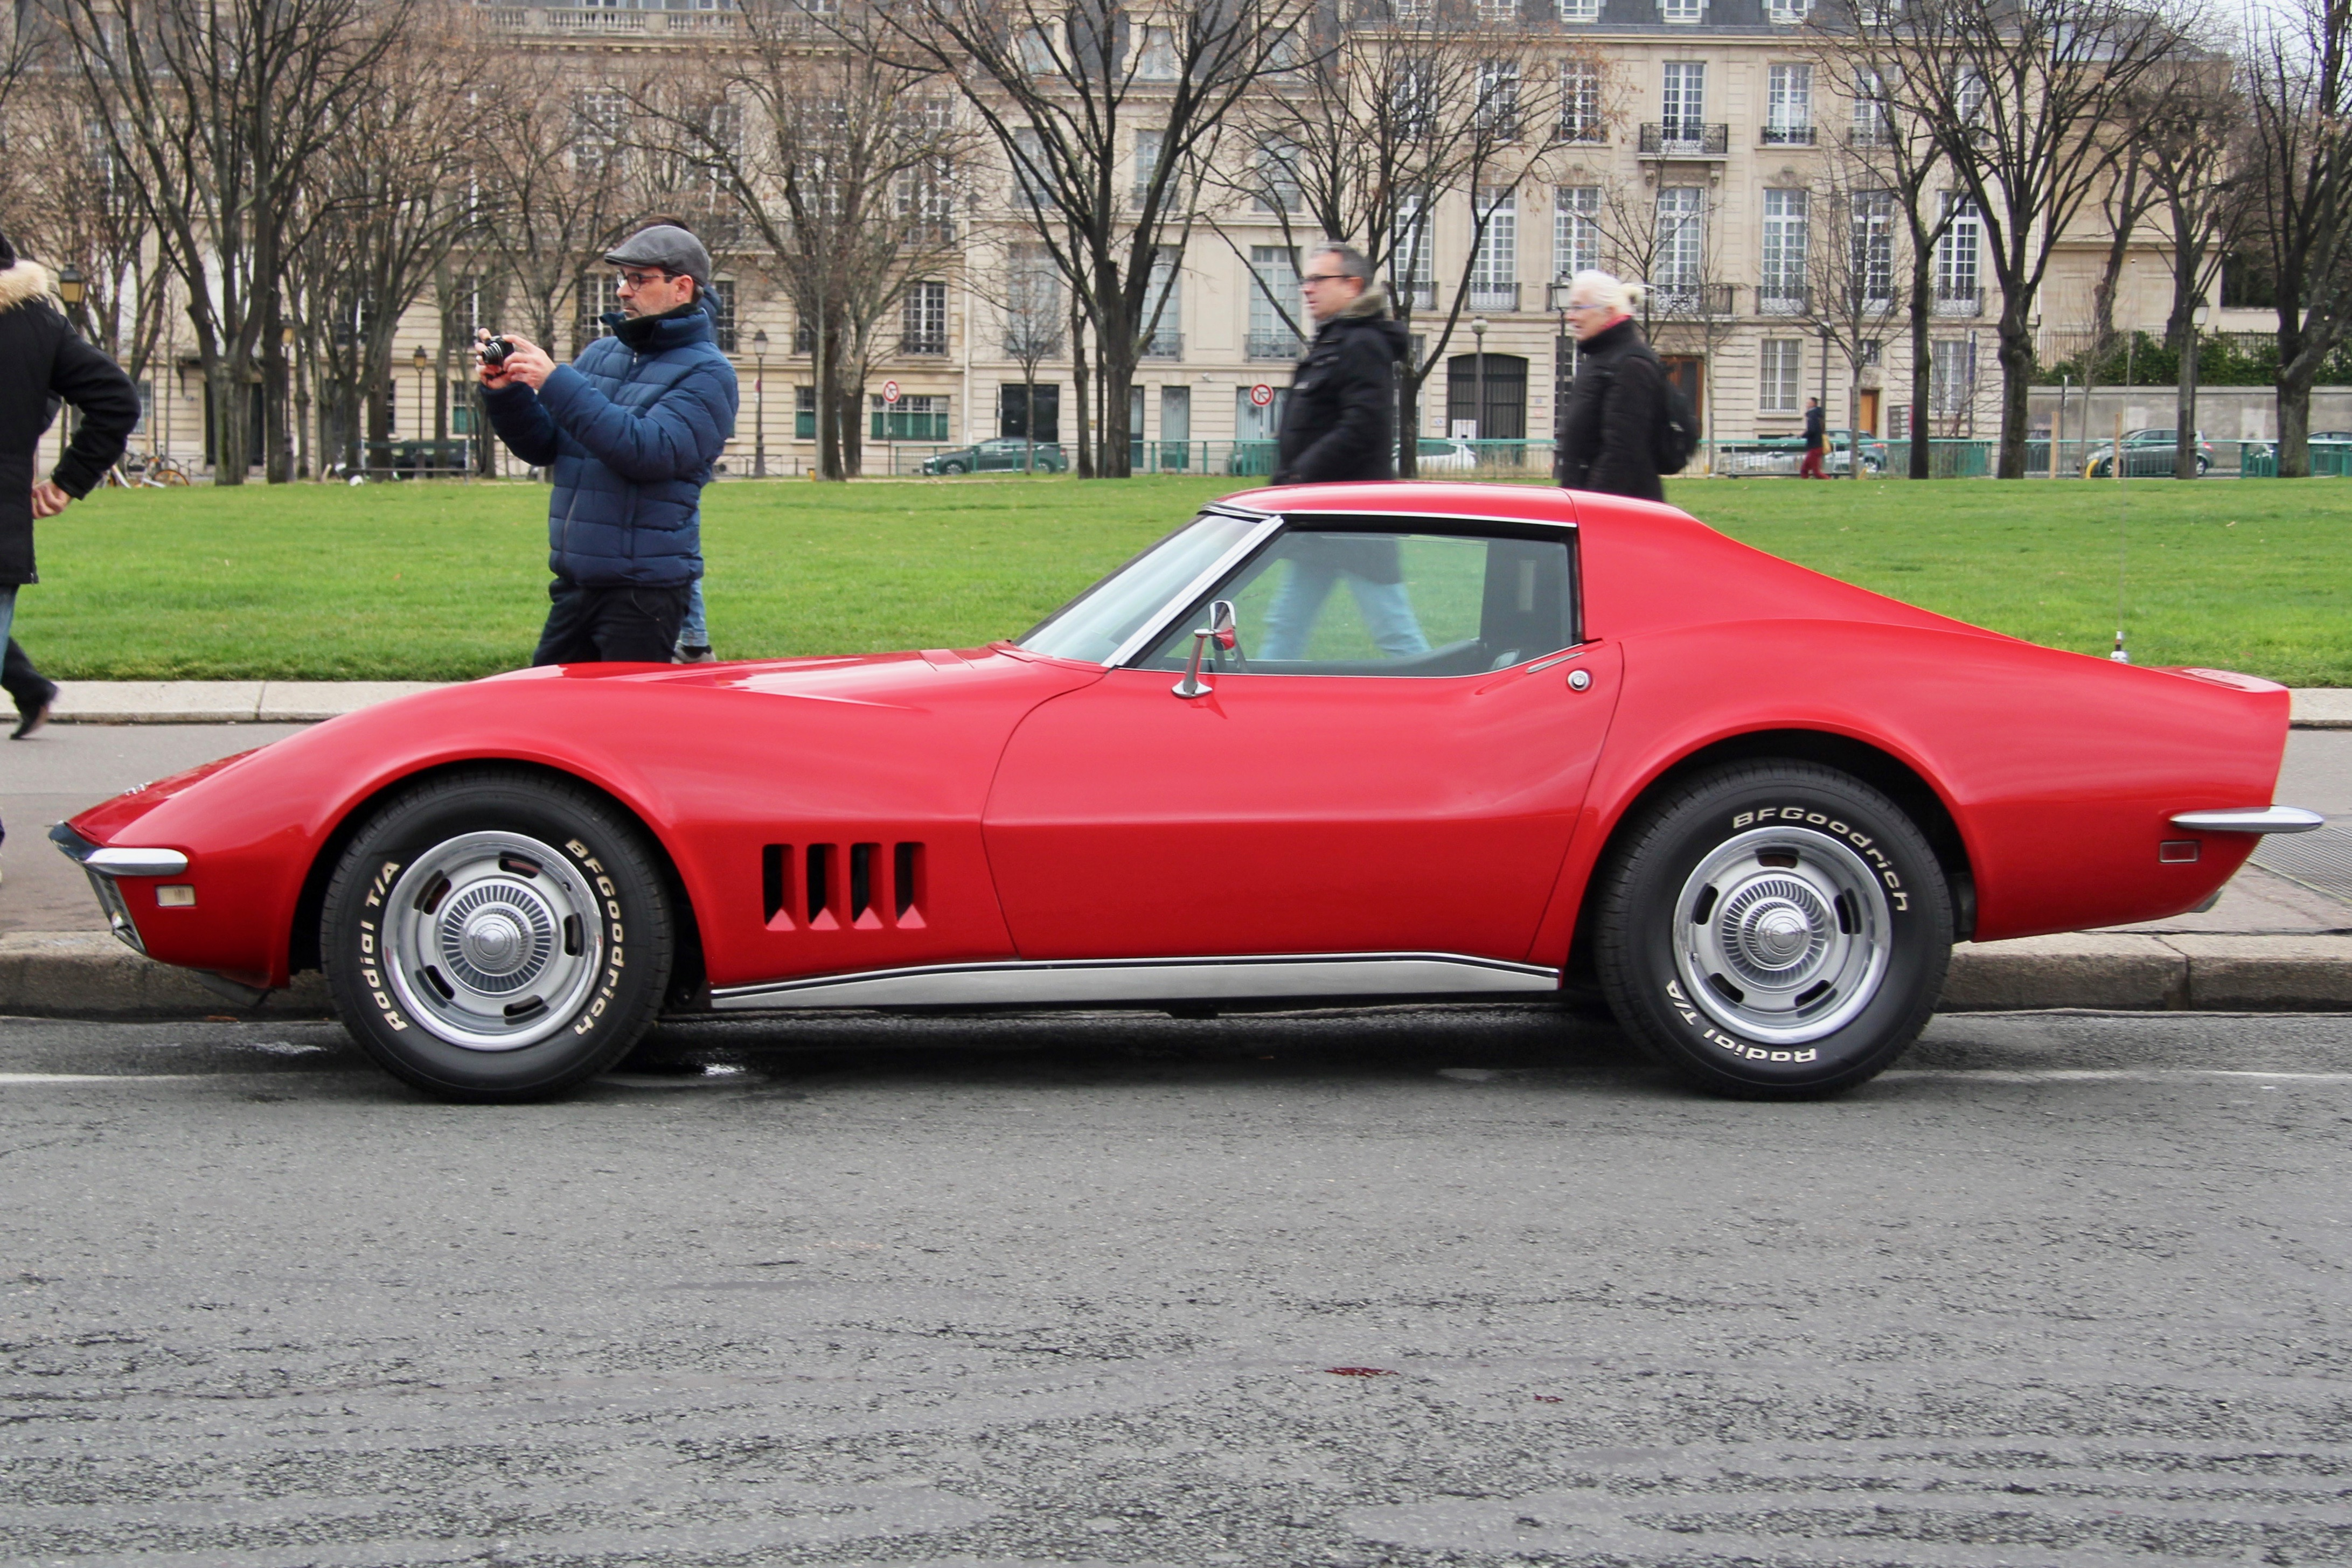 Chevrolet Corvette C3 Stingray - Traversée de Paris Hivernale 2019 - photo Ludo Ferrari